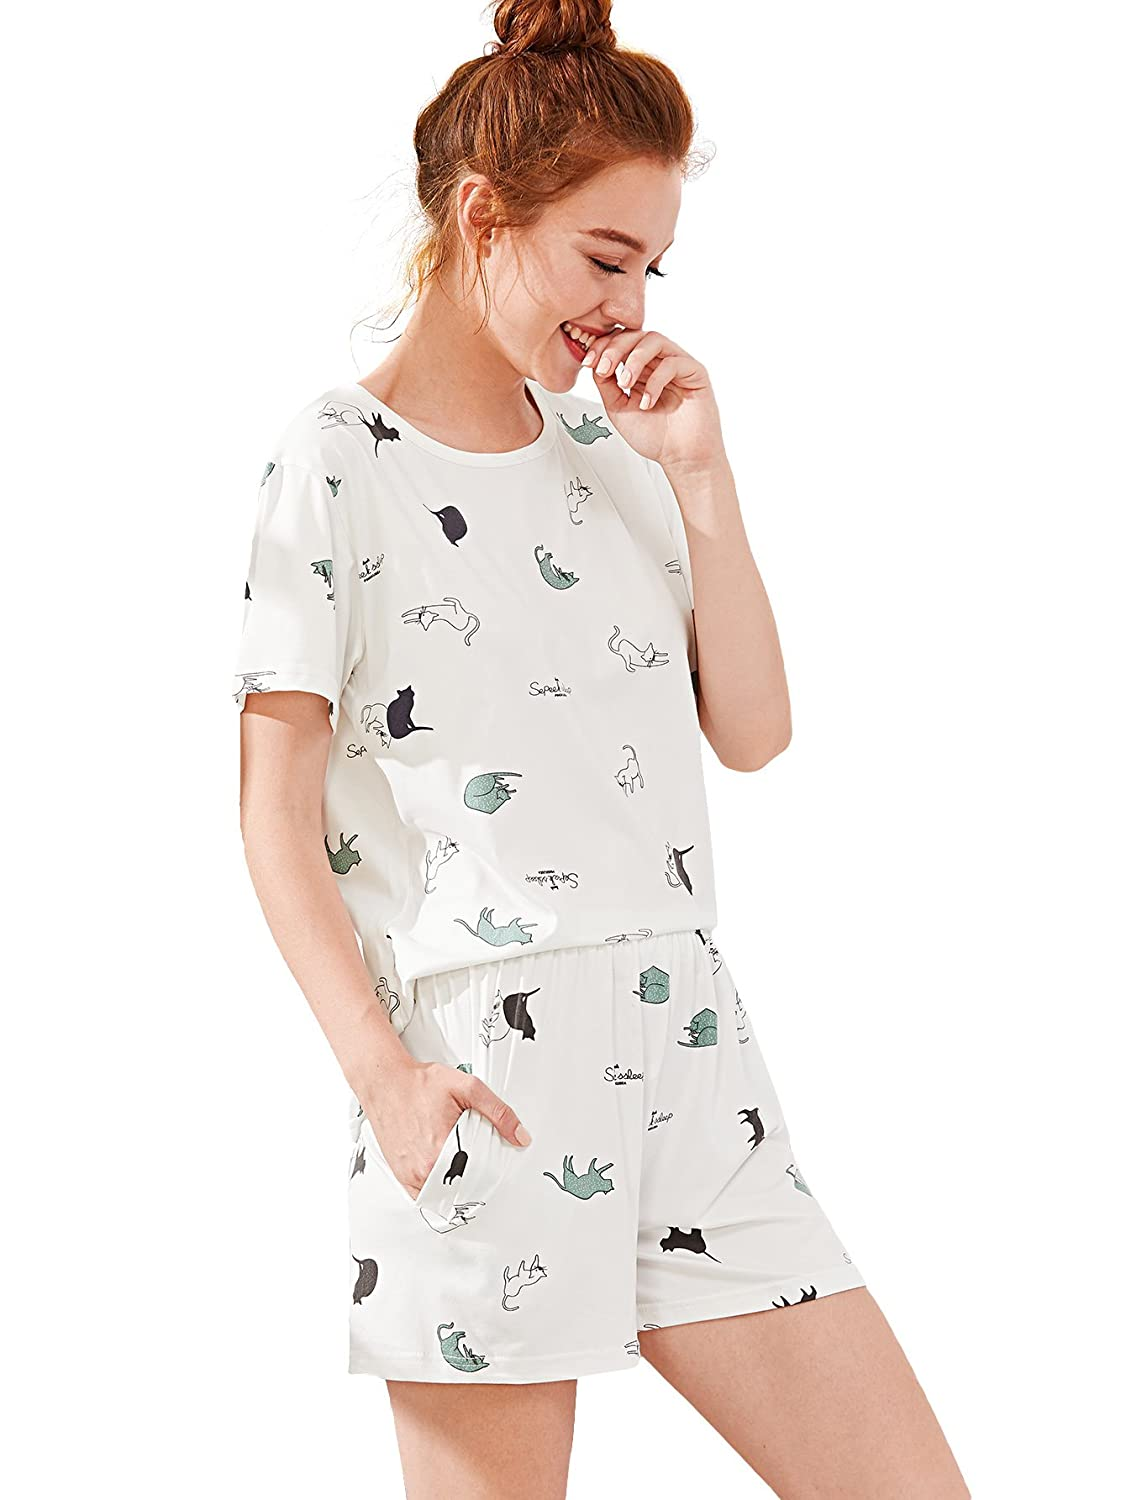 9bd58b26d46a Summer graphic shirt and shorts two pieces set sleepwear with pockets.  Round neck short sleeve T-shirt and shorts nightwear loungewear. Casual and  cute ...